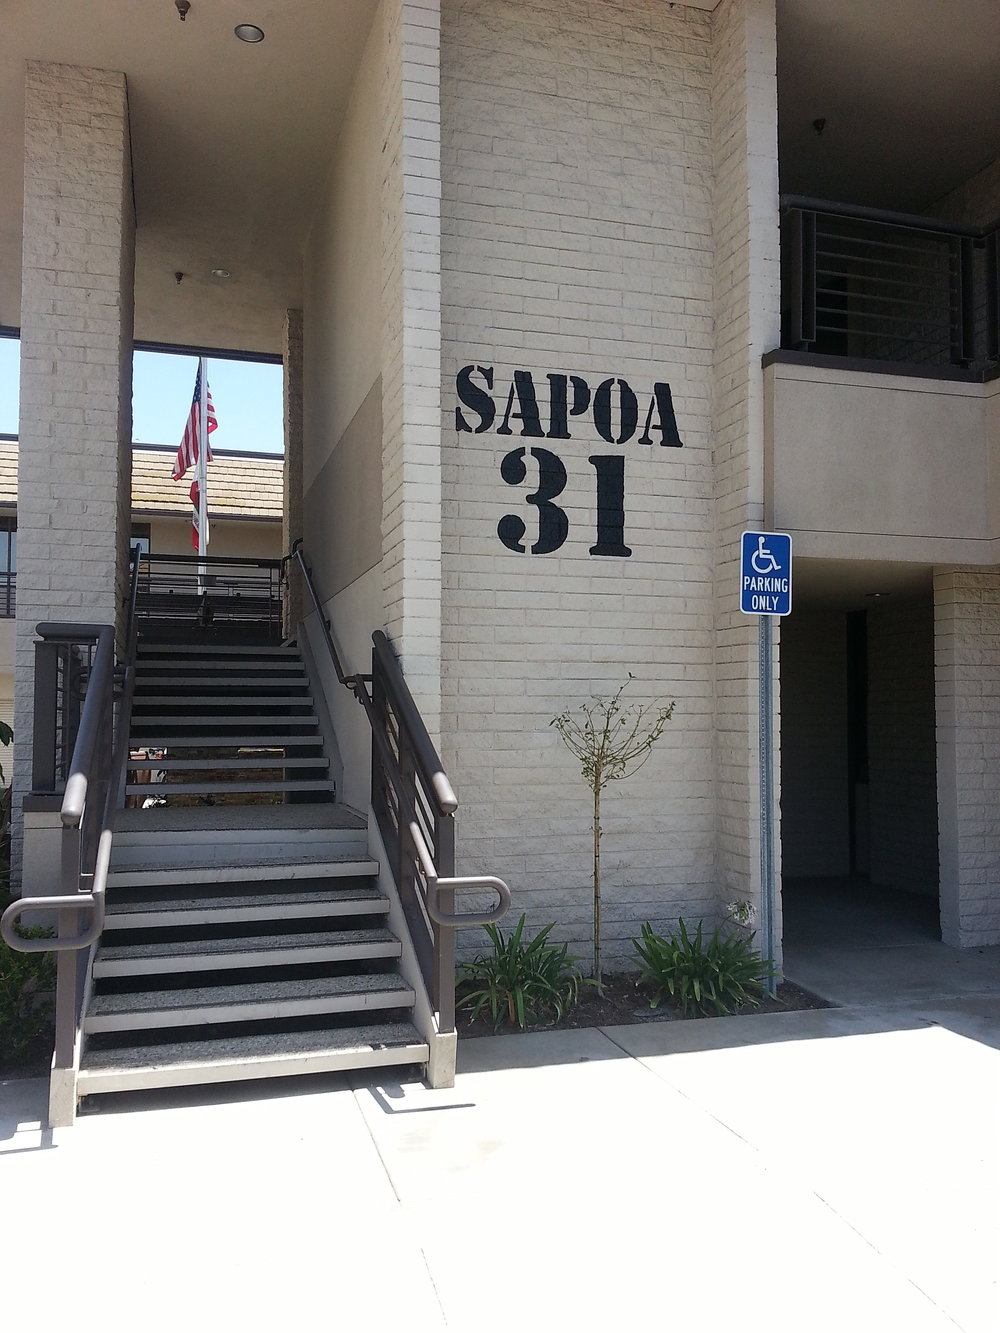 SAPOA exterior hand painted wall graphic